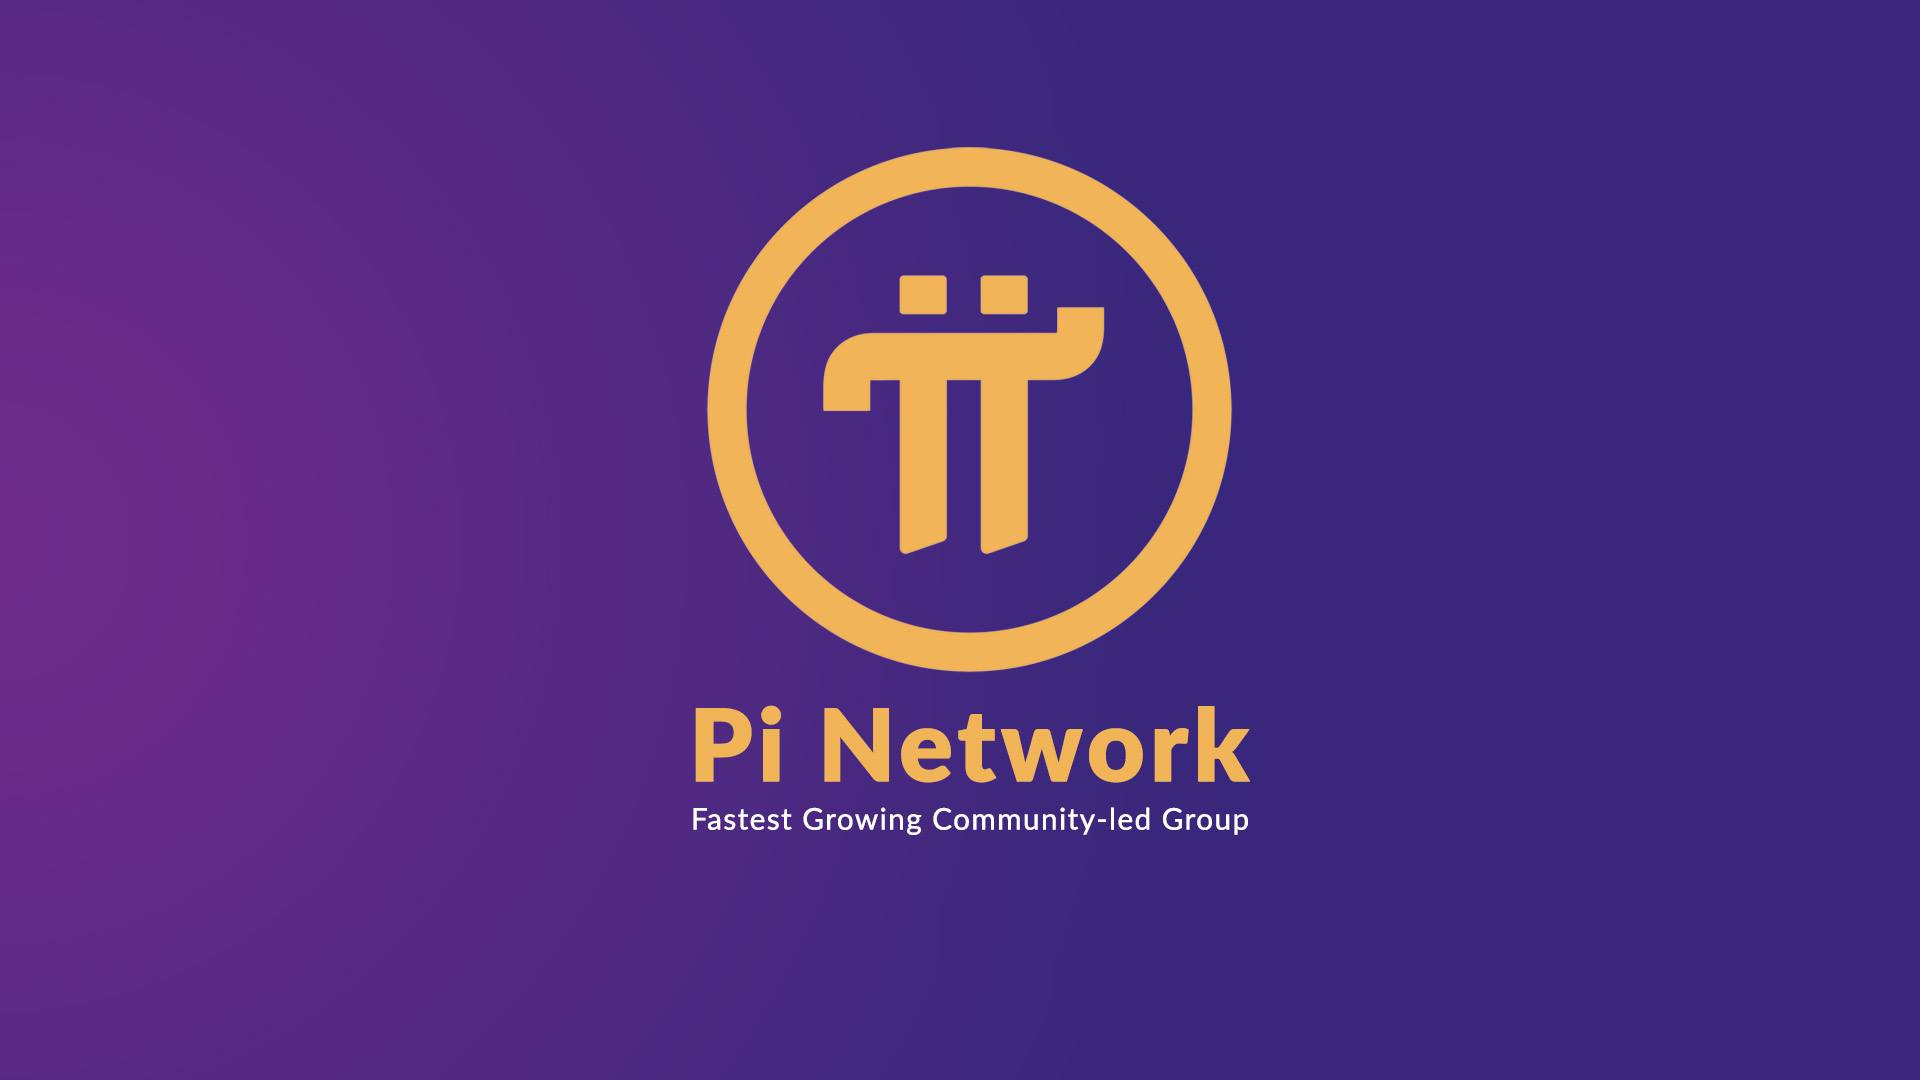 Migodi ya Cryptocurrency: Pi Network